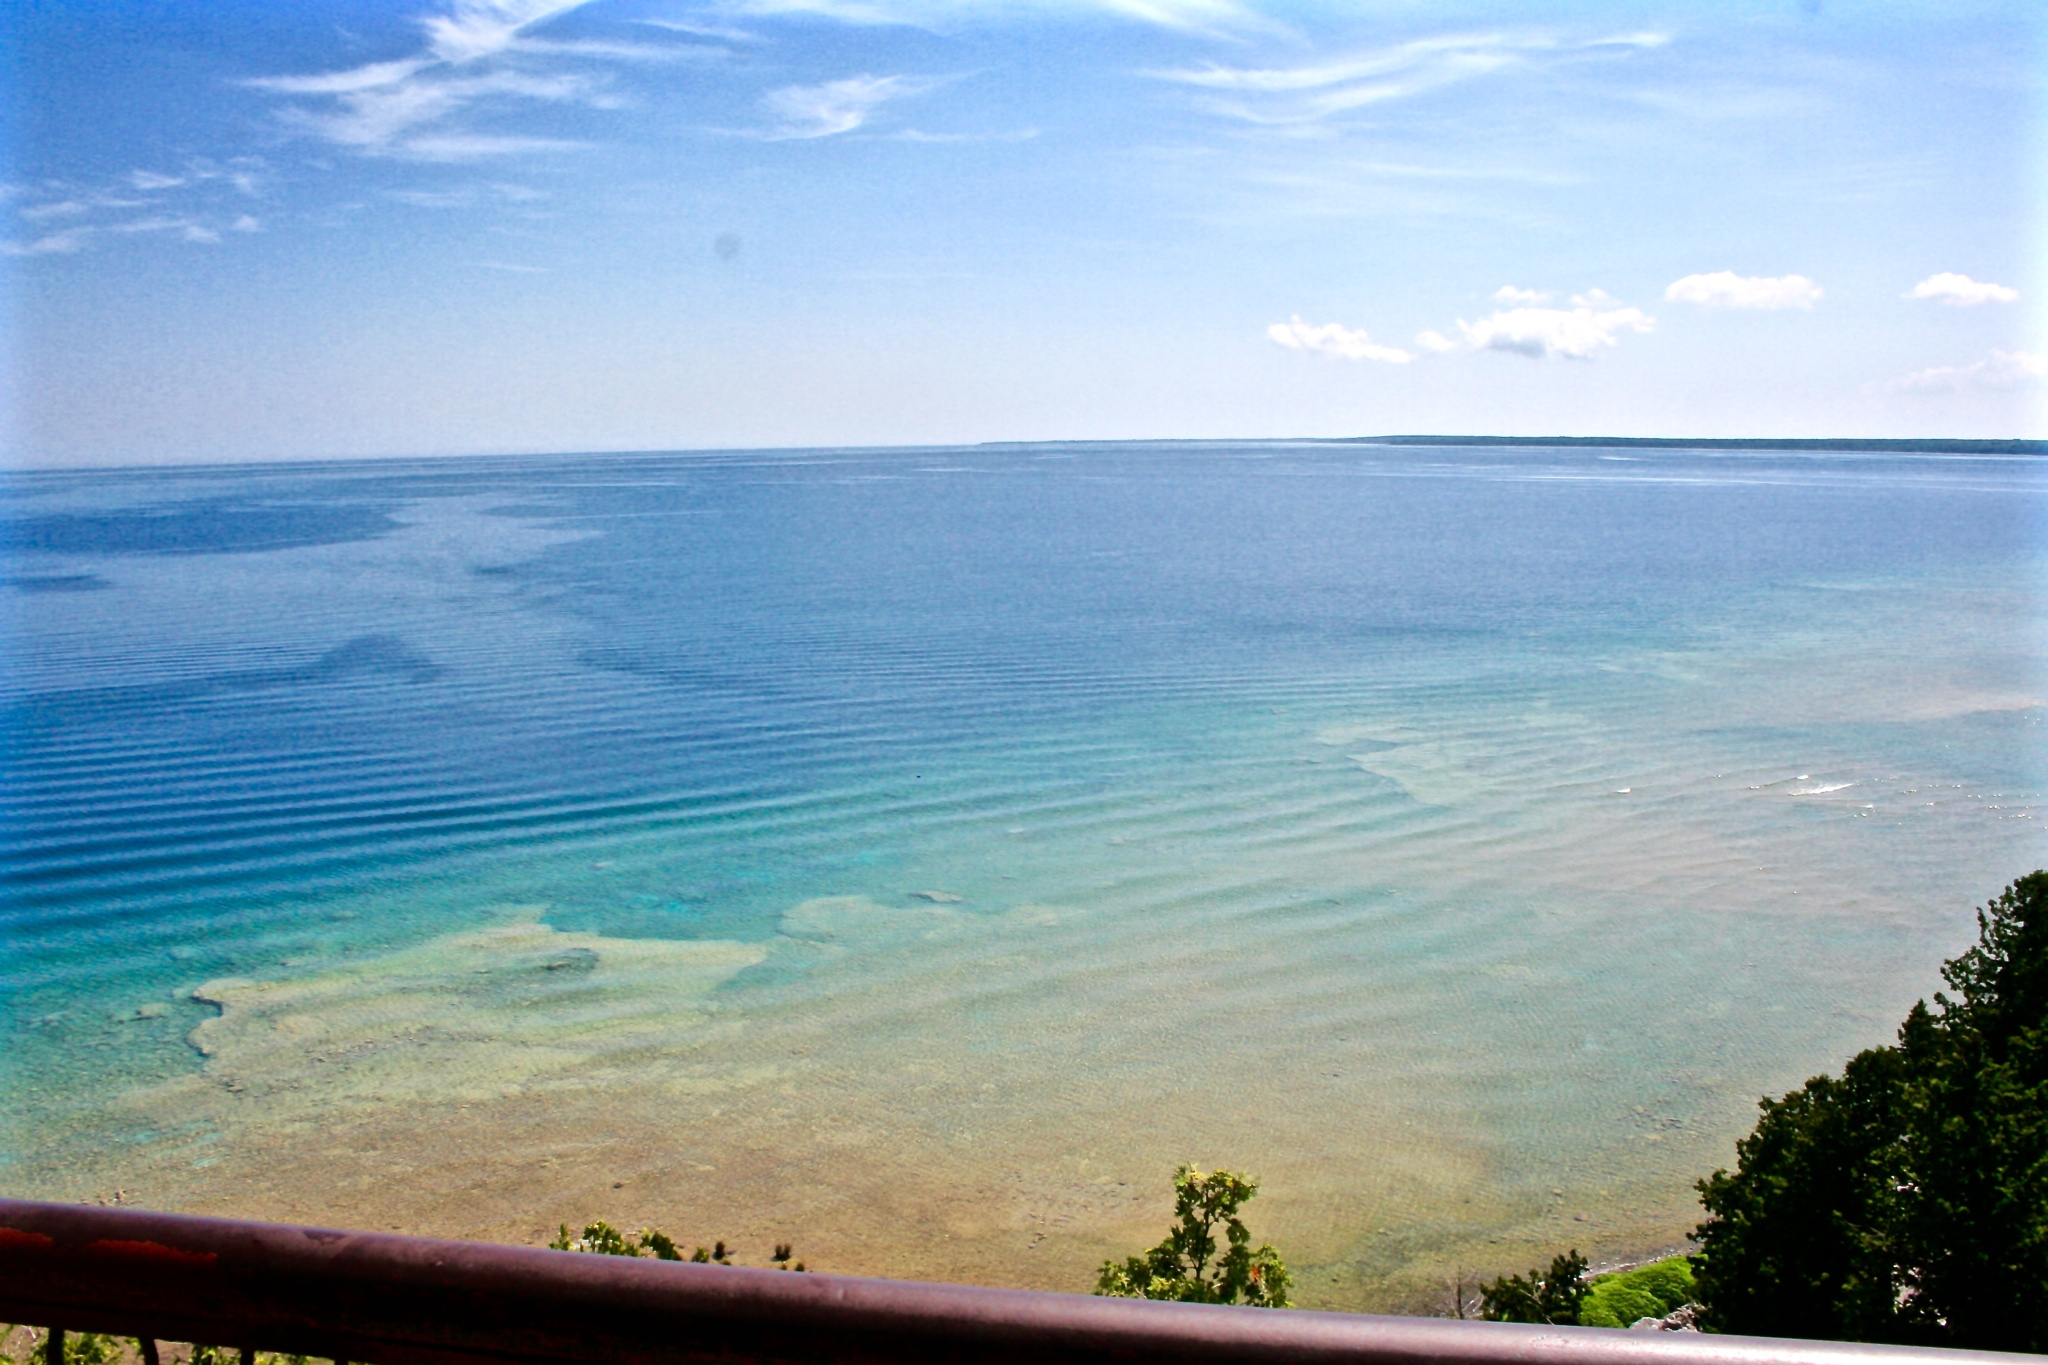 Lake Michigan off of Mackinaw Island by Laurie Ann Morche'